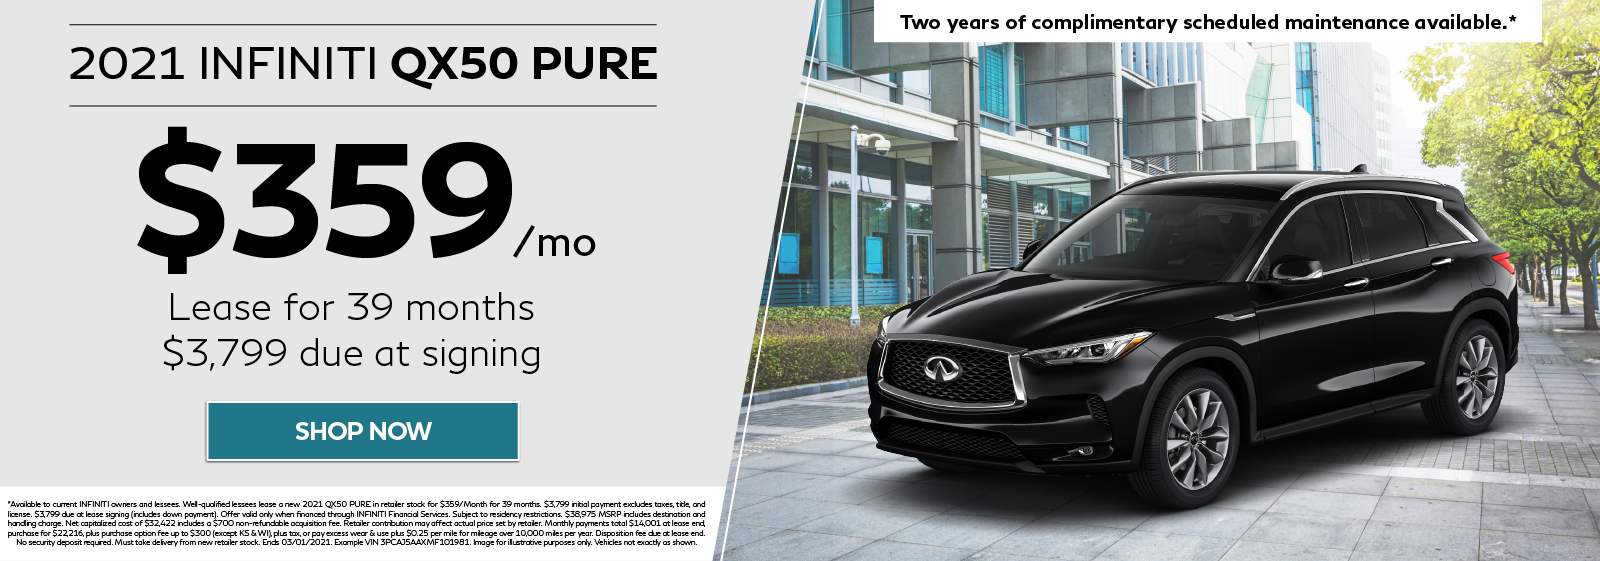 Lease a new 2021 QX50 Pure for $359 per month for 39 months. Click to shop now.